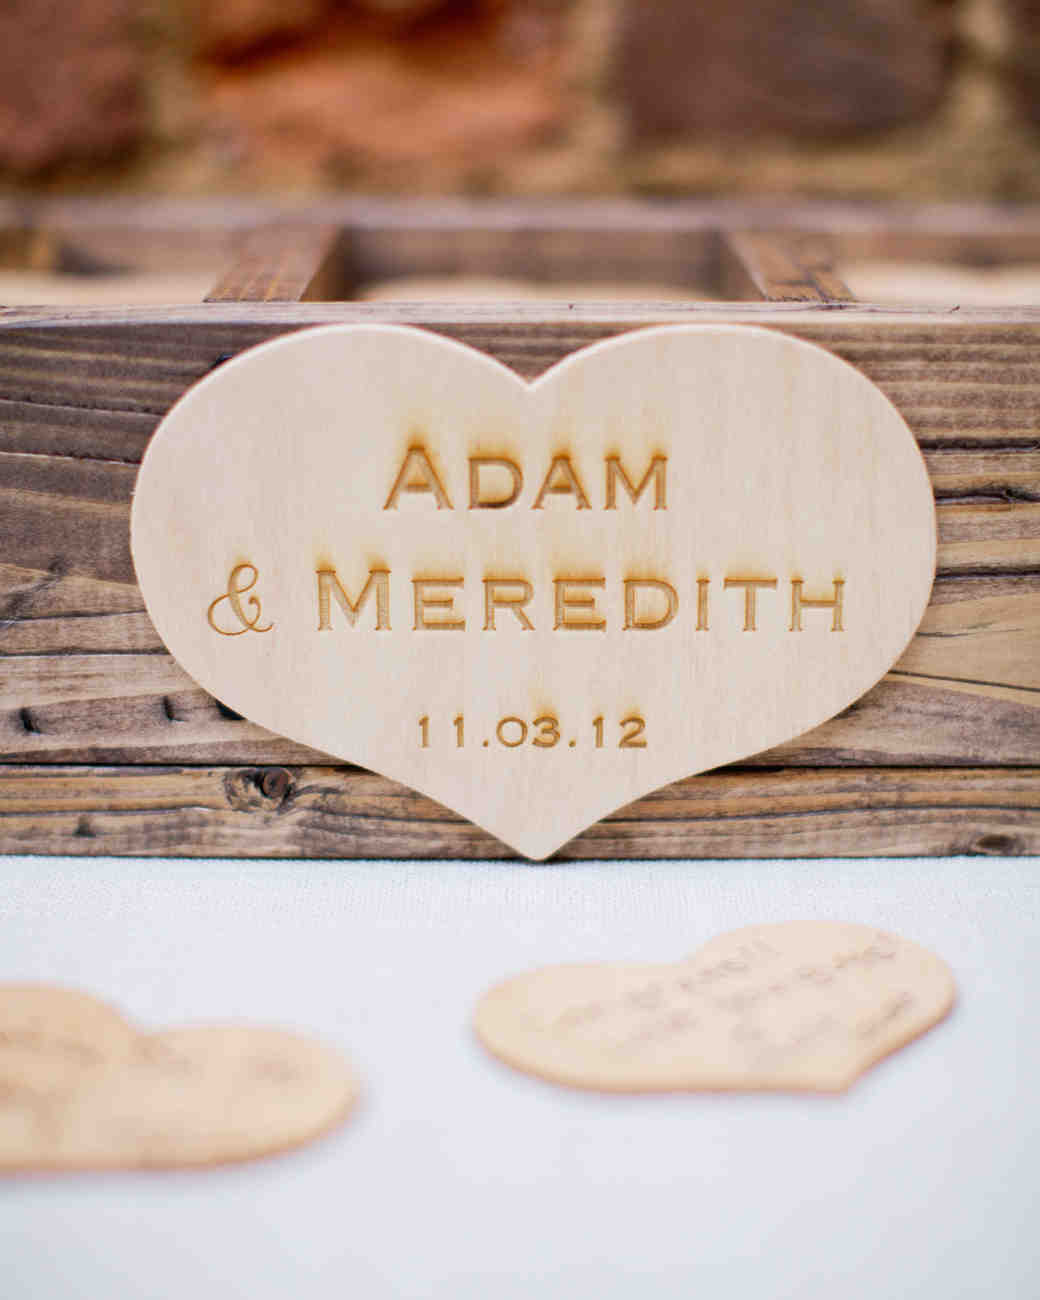 real-weddings-meredith-adam-harl3632.jpg